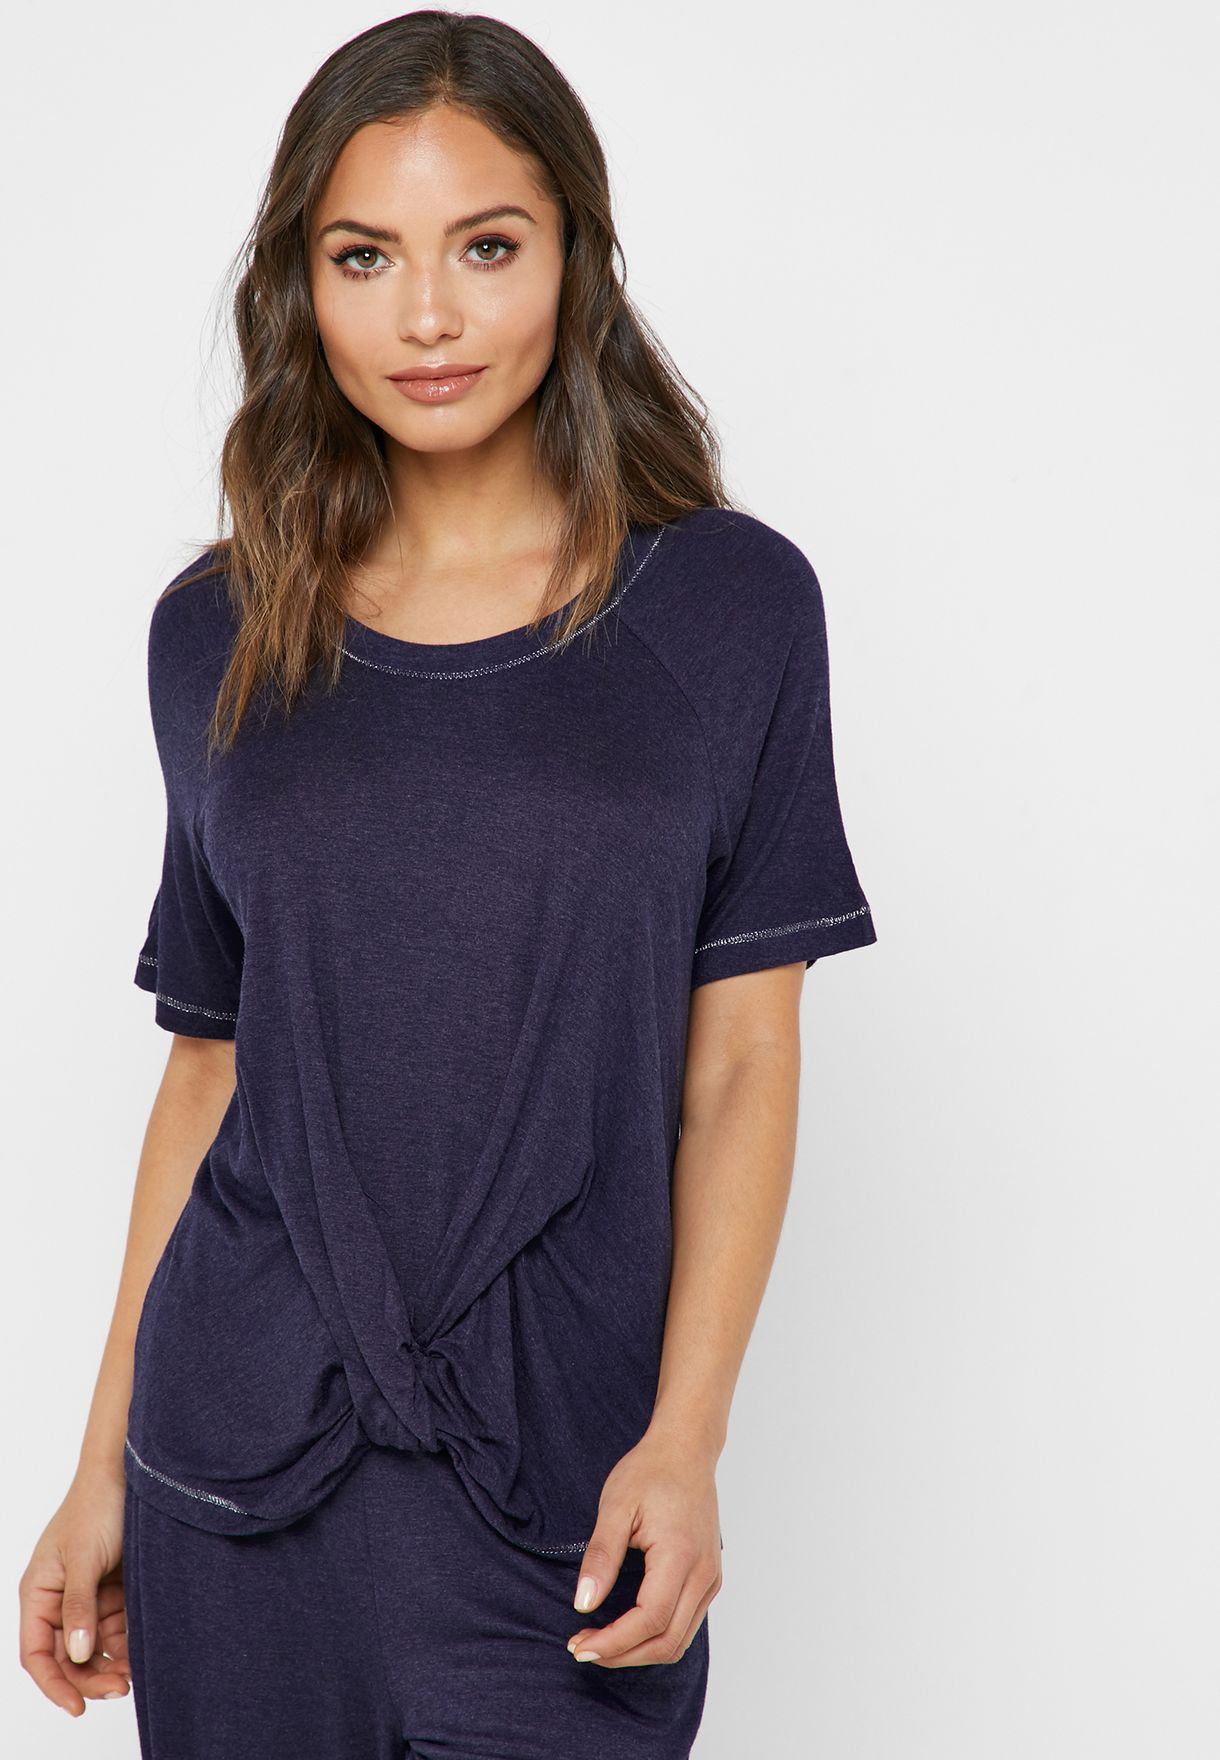 a985ba80f3bbb Shop Dorothy Perkins navy Twisted Front Lounge Top 33200307 for ...